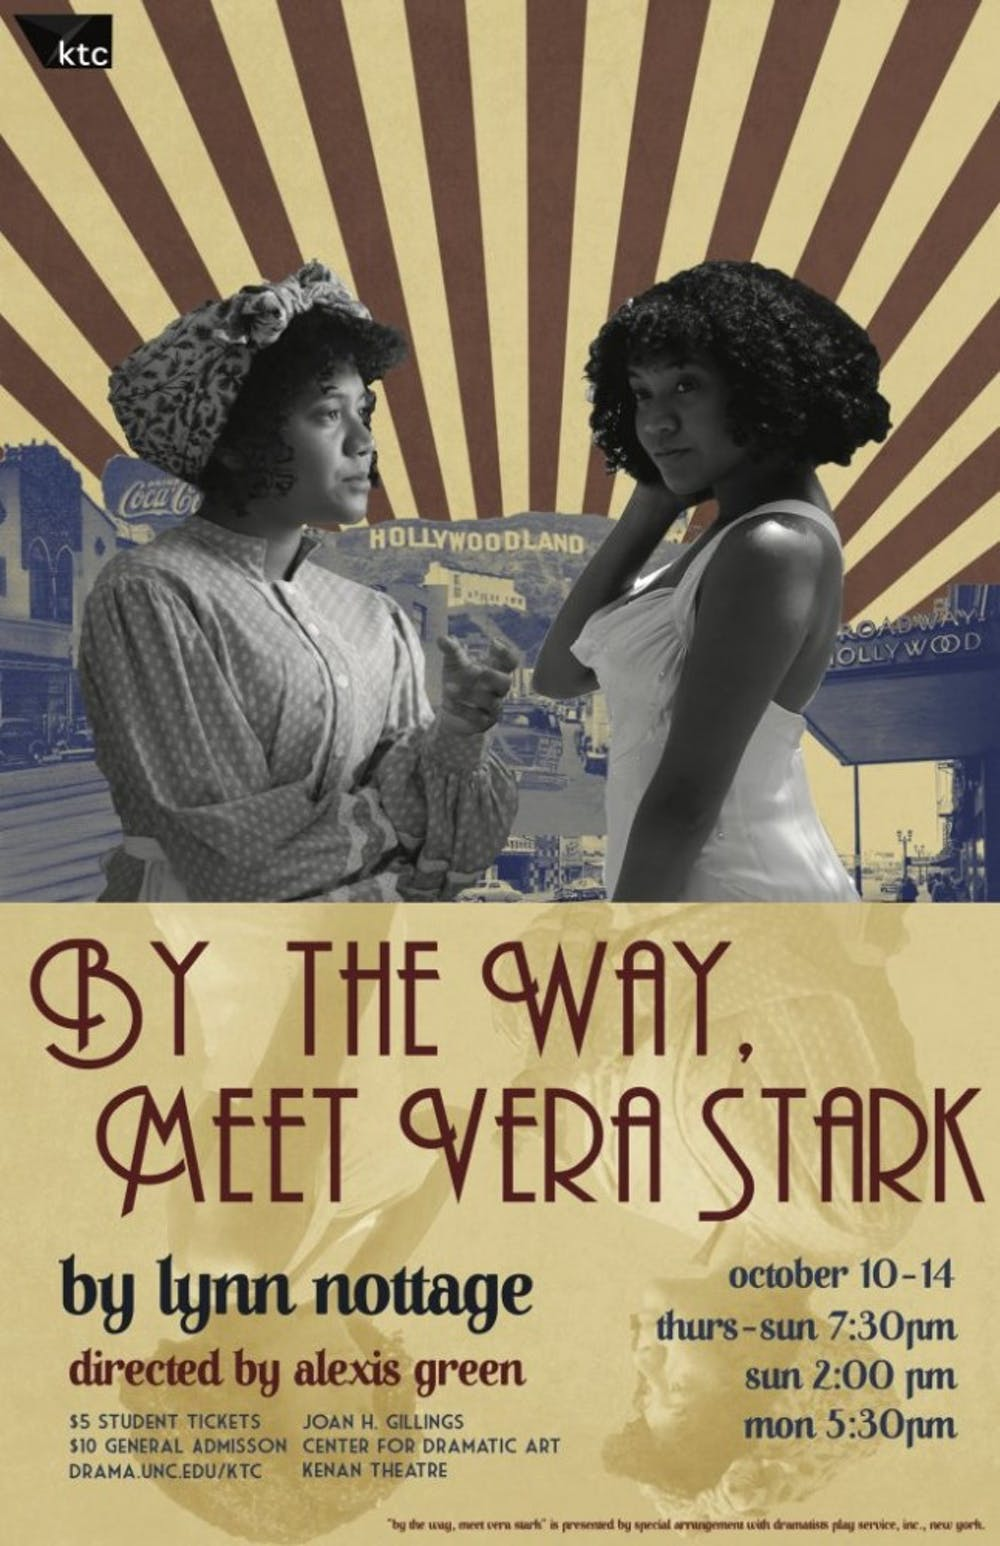 'By the Way, Meet Vera Stark' confronts the issue of the missing Black woman